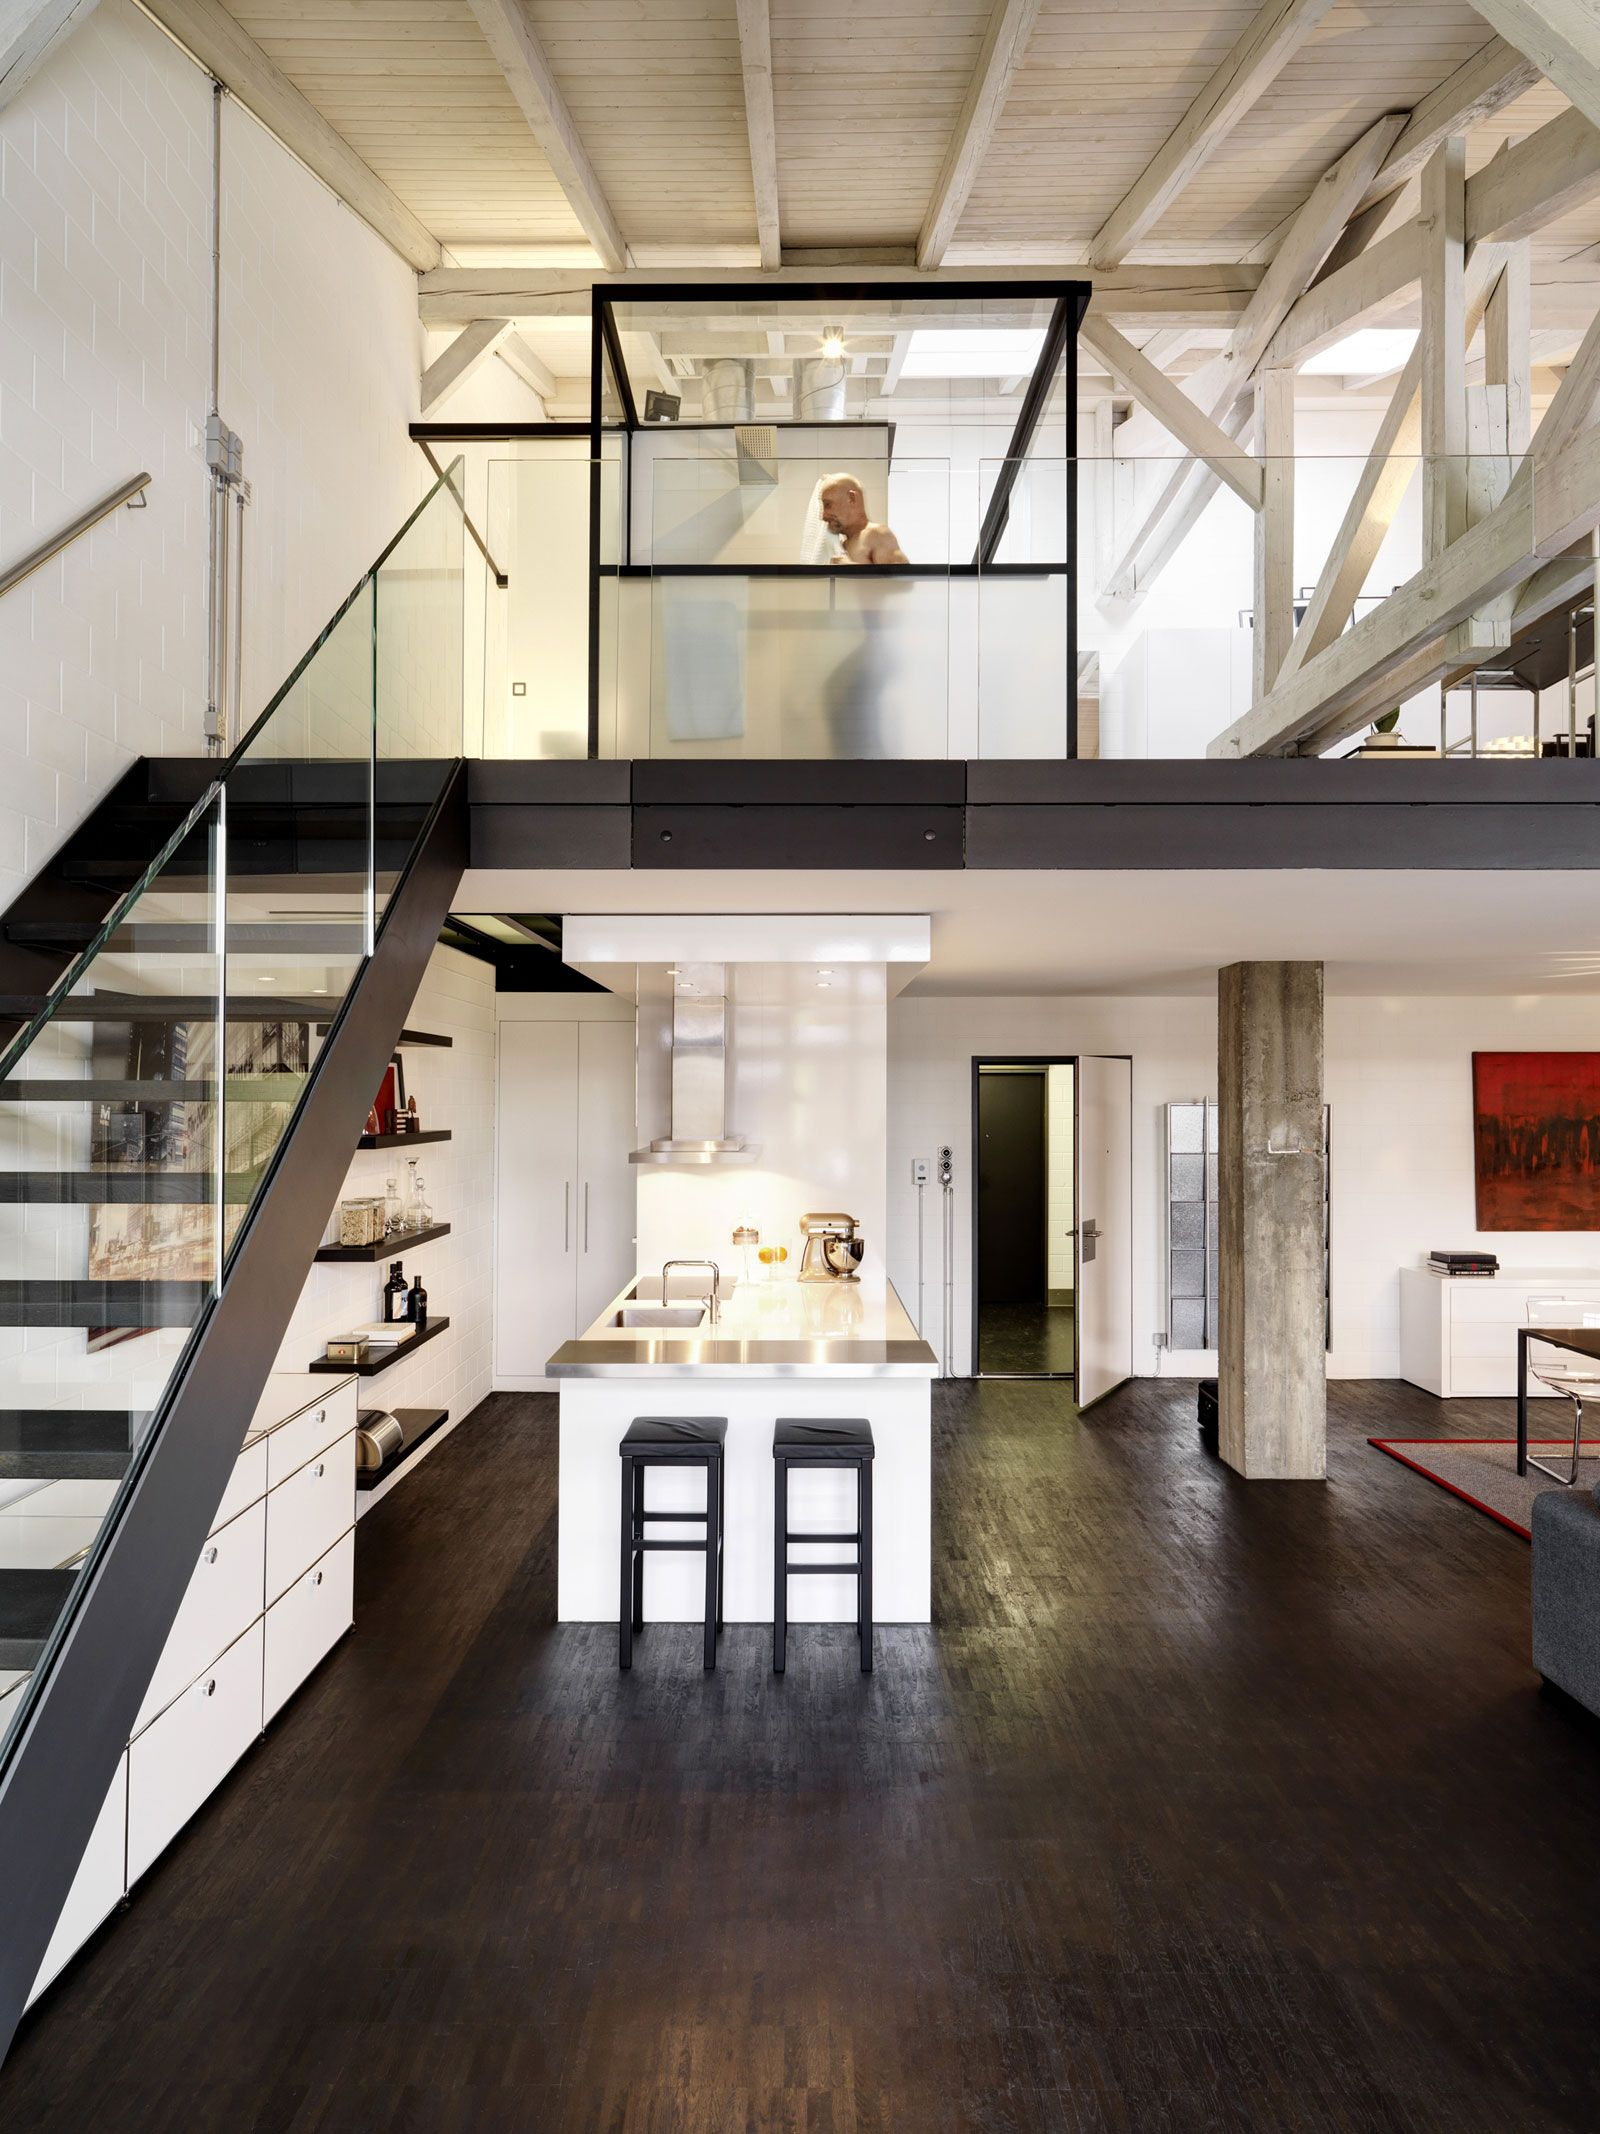 Daniele Claudio Taddei Architect Gives New Life to this Loft in ...